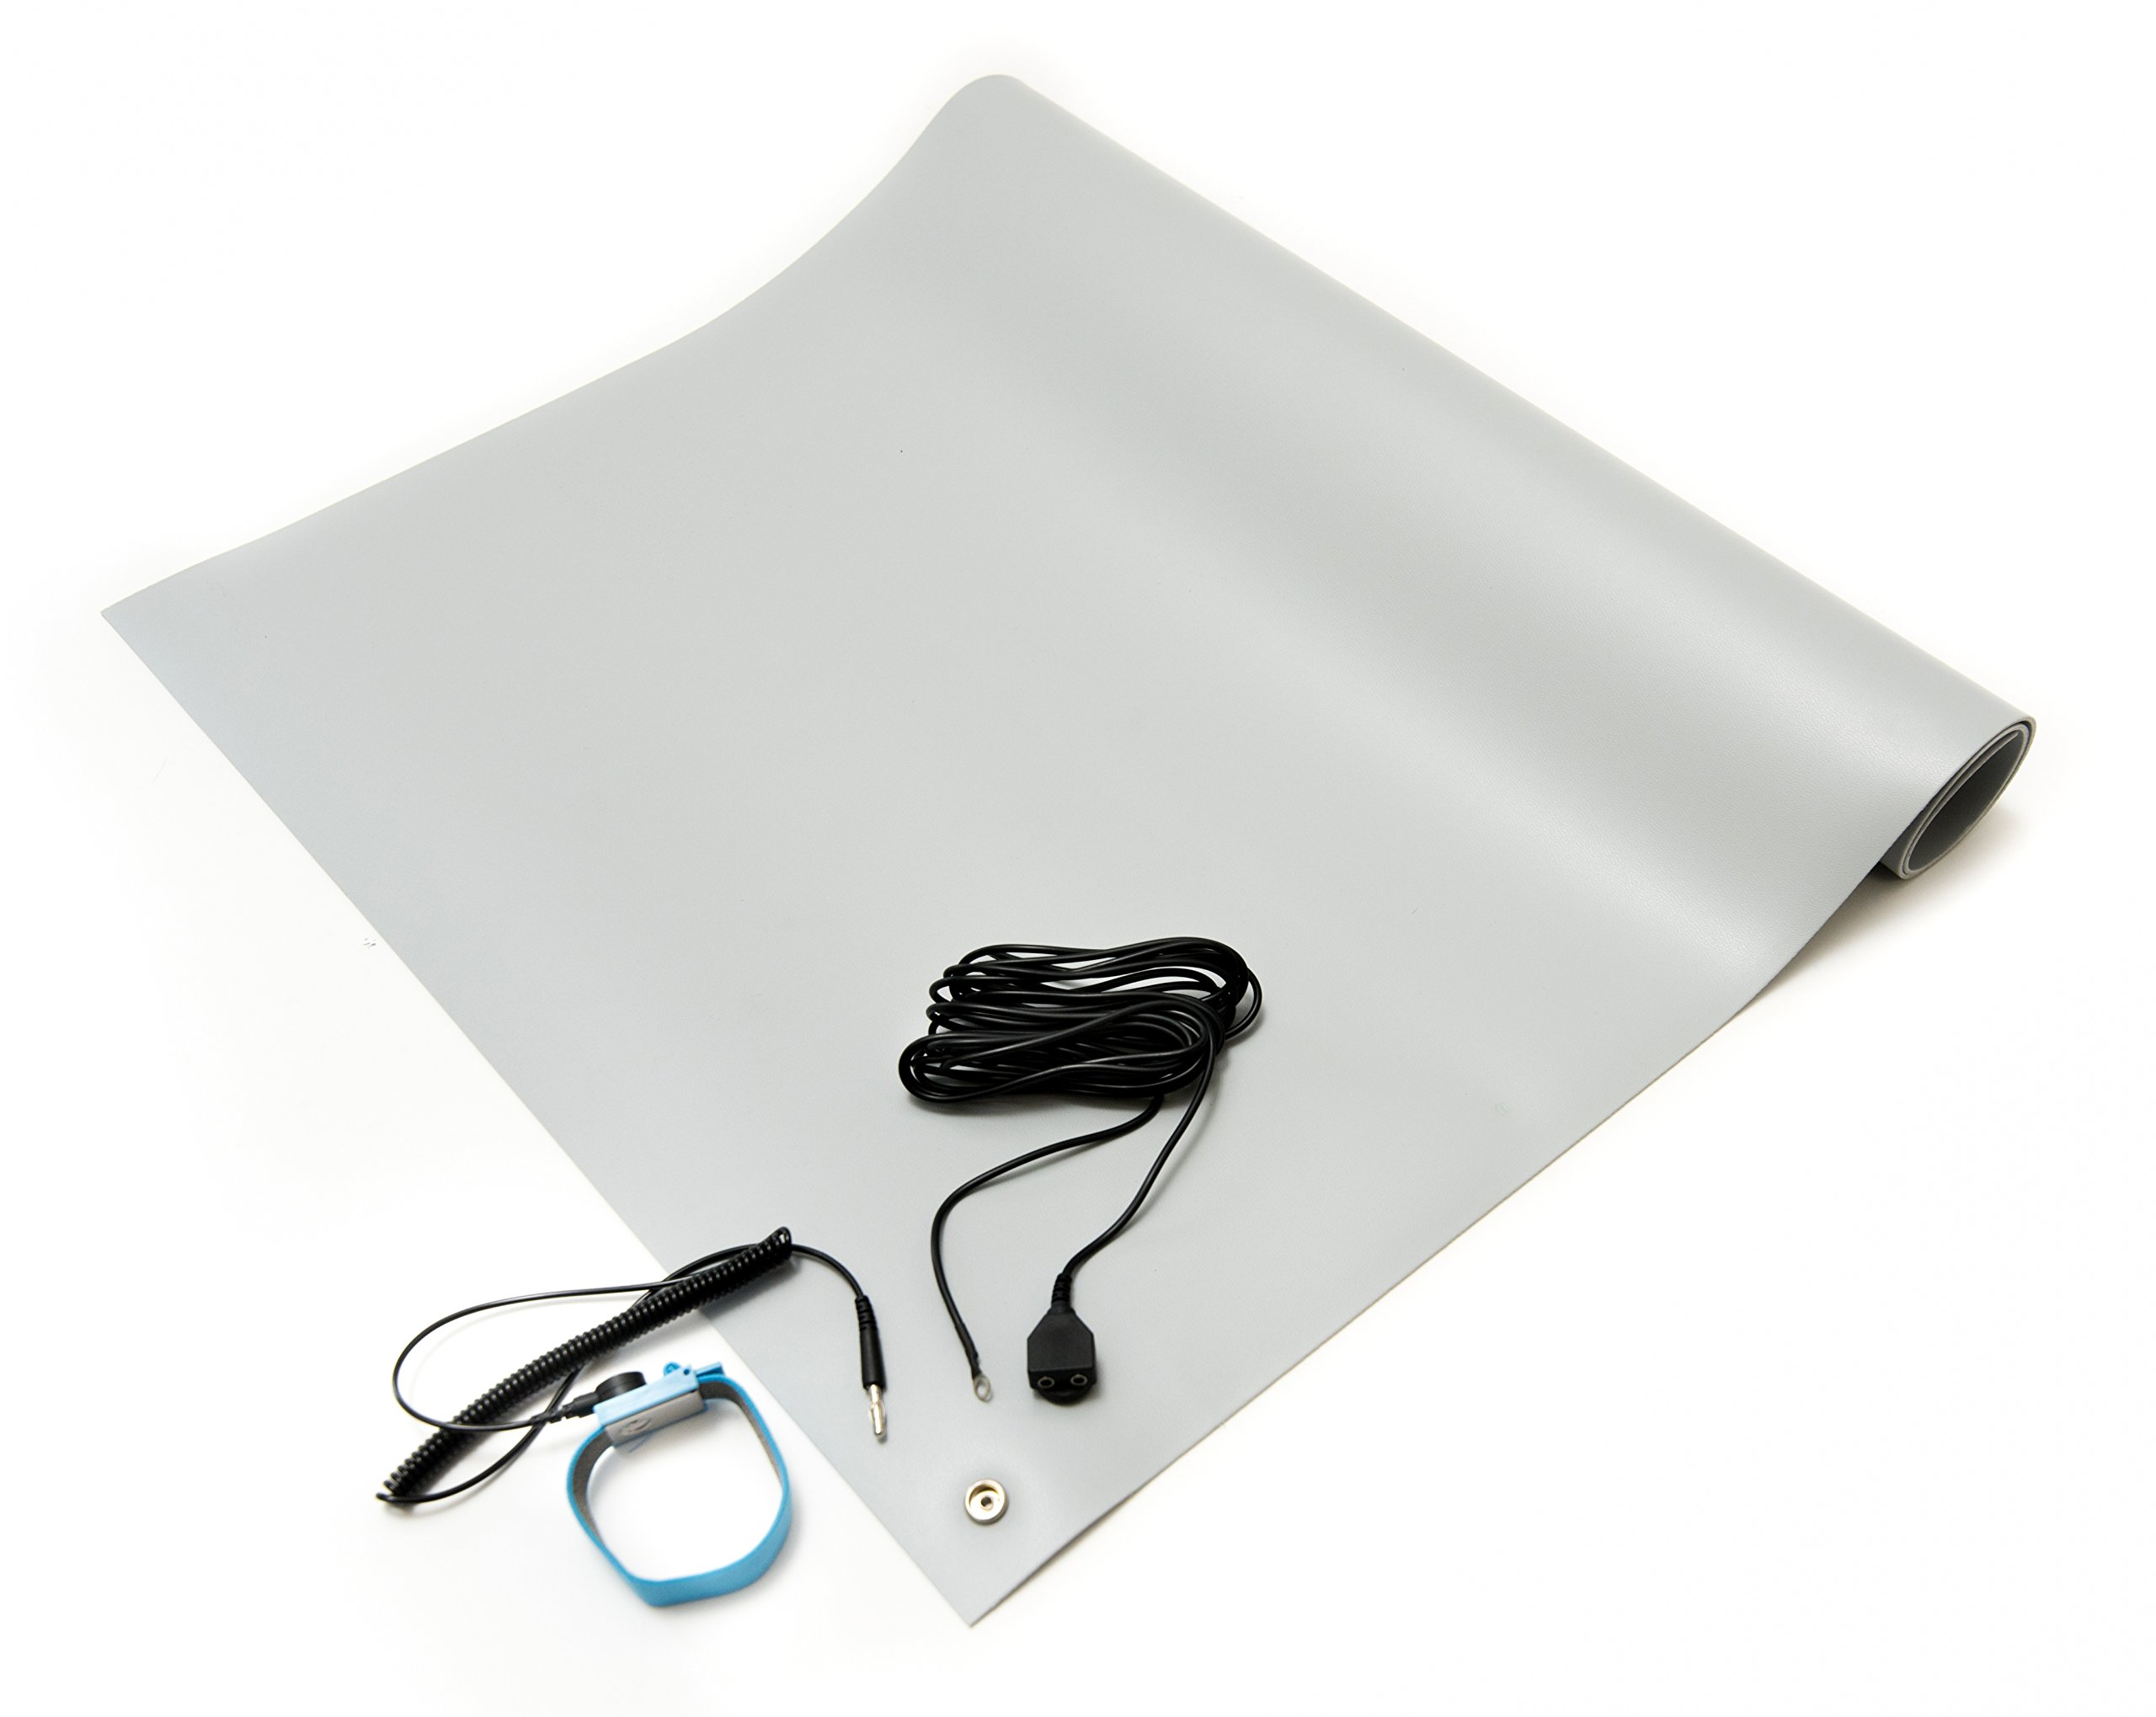 Bertech ESD Mat Kit with a Wrist Strap and Grounding Cord, 2' Wide x 6' Long x 0.093'' Thick, Gray (Made in USA)